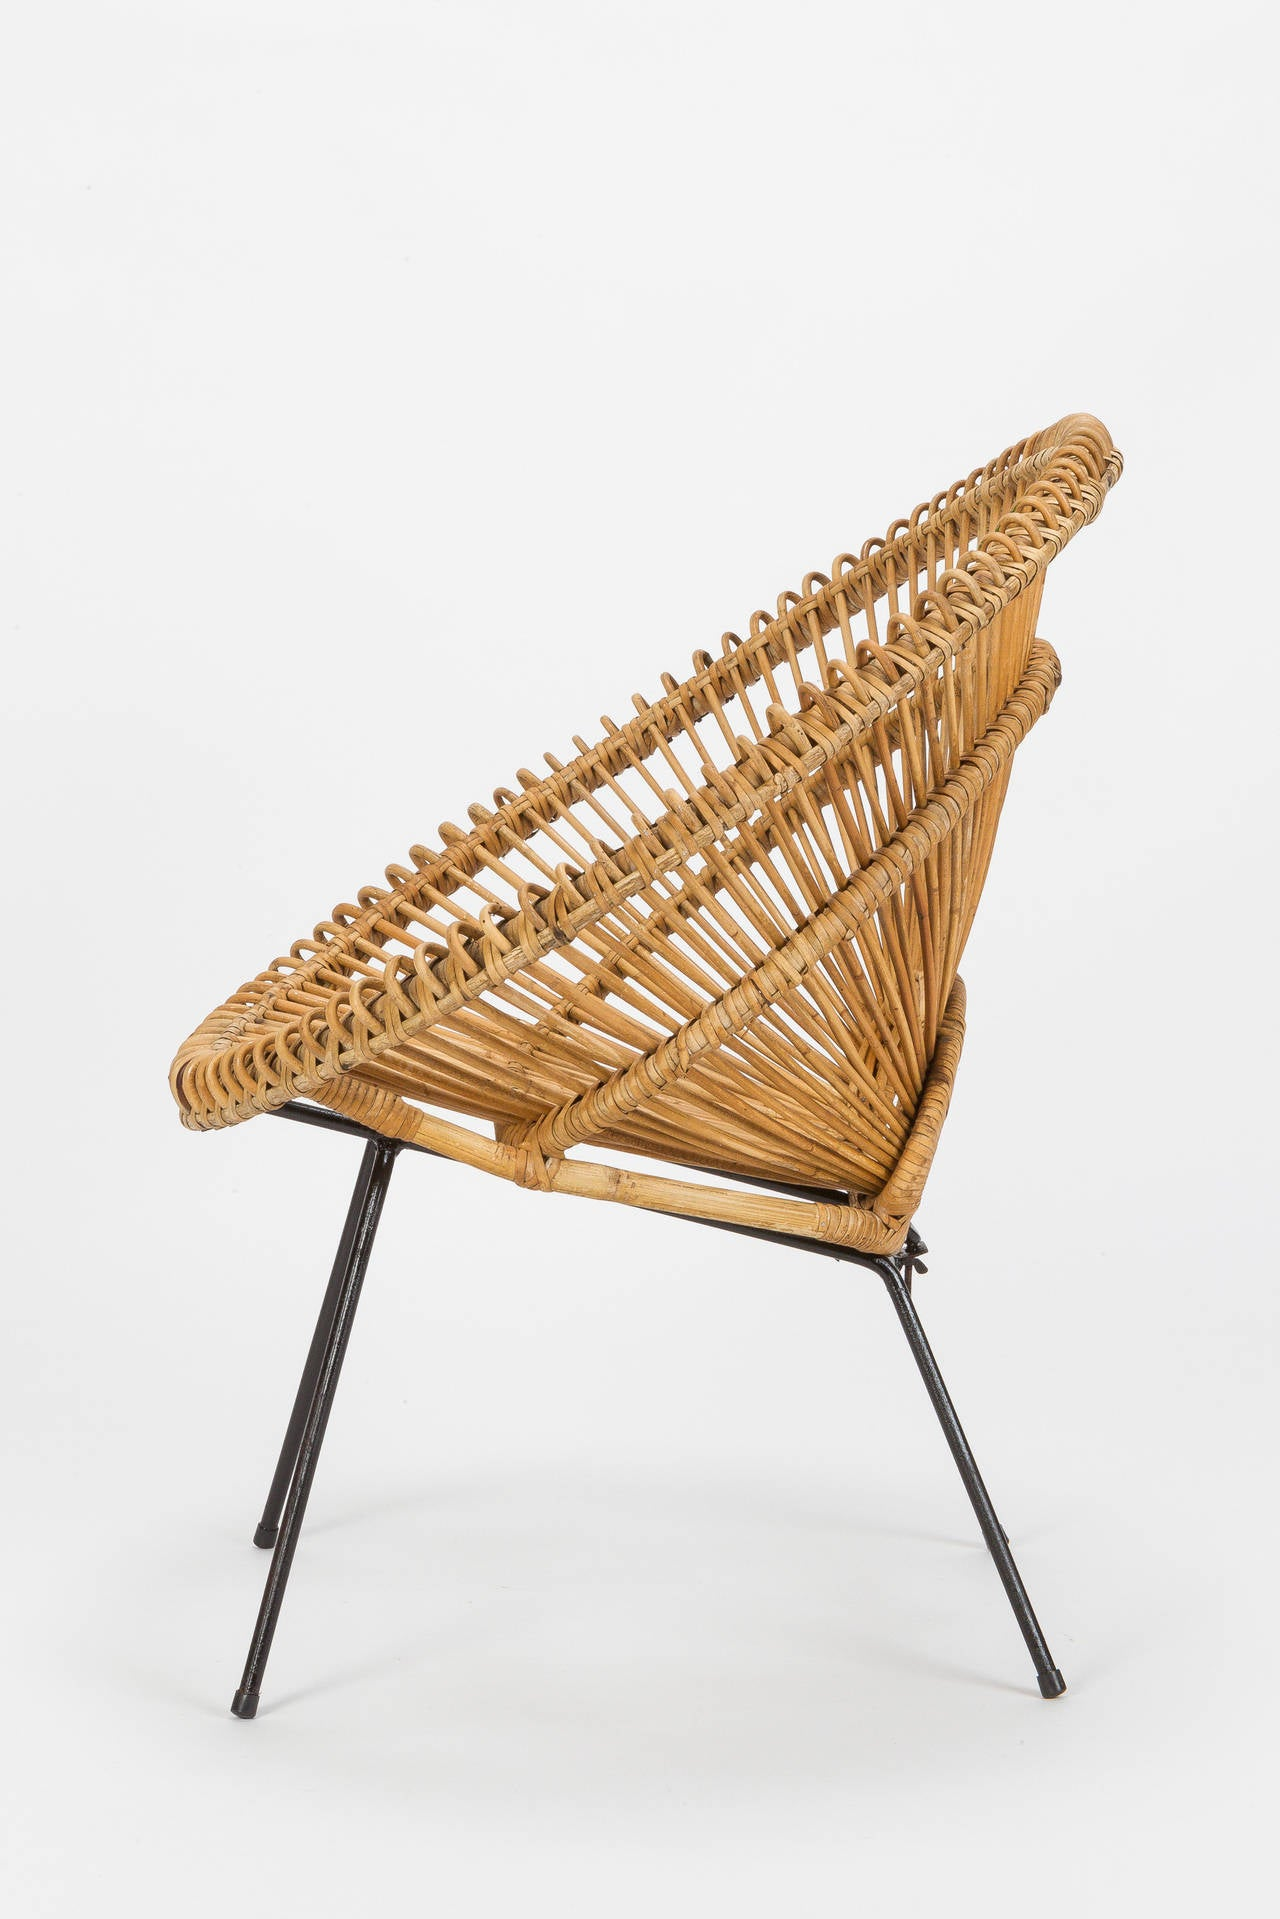 french wicker chair attributed to janine abraham and dirk jan rol